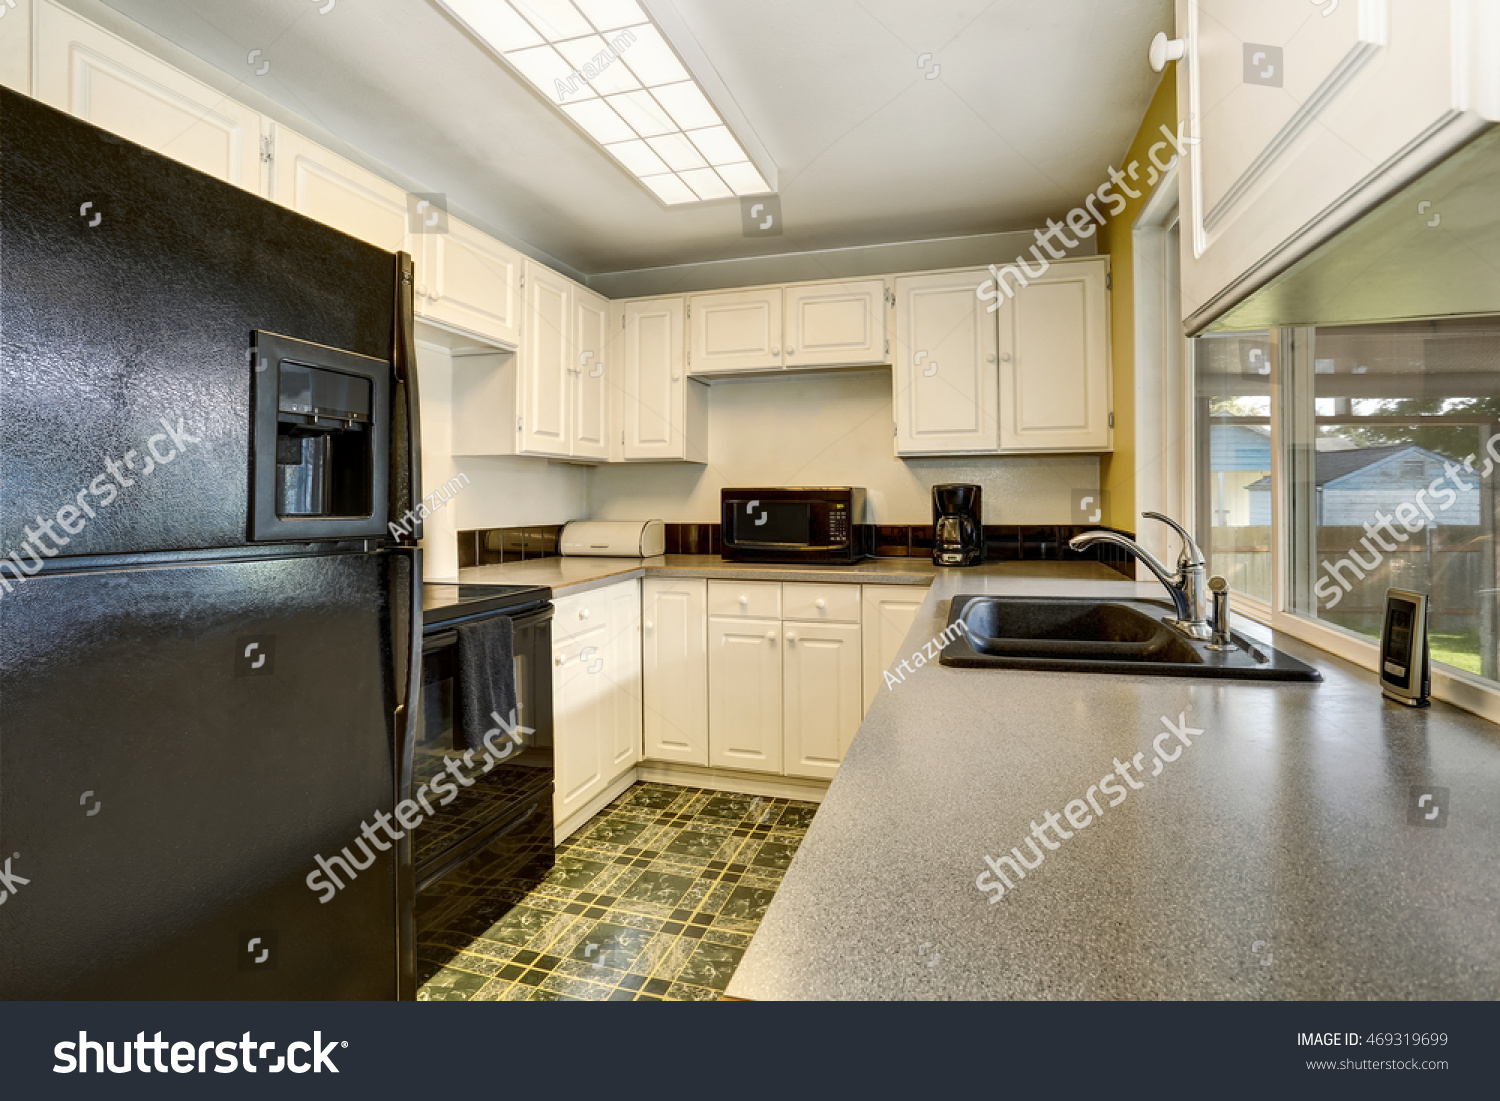 Classic American Kitchen Romm Interior With White Wooden Cabinets. Northwest,  USA